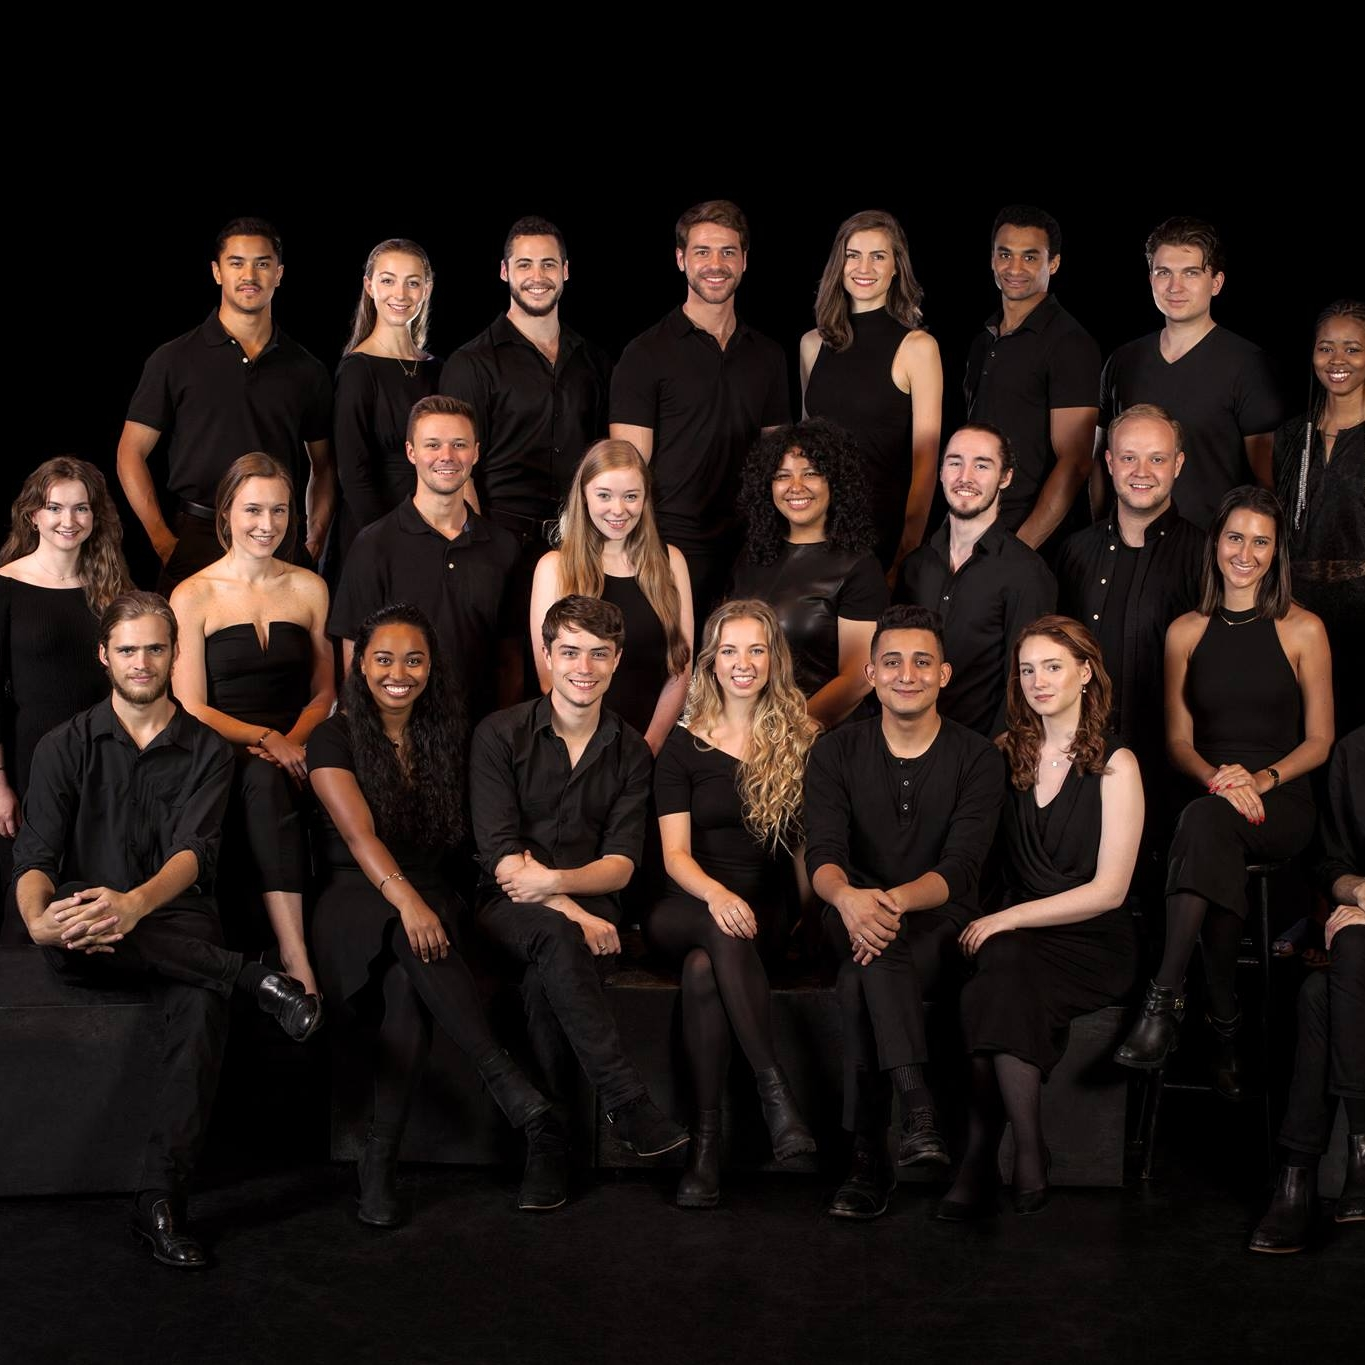 ACADEMY COMPANY SHOWCASE - Finty will be performing for the last time at the American Academy of Dramatic Arts in the showcase on March 7th.